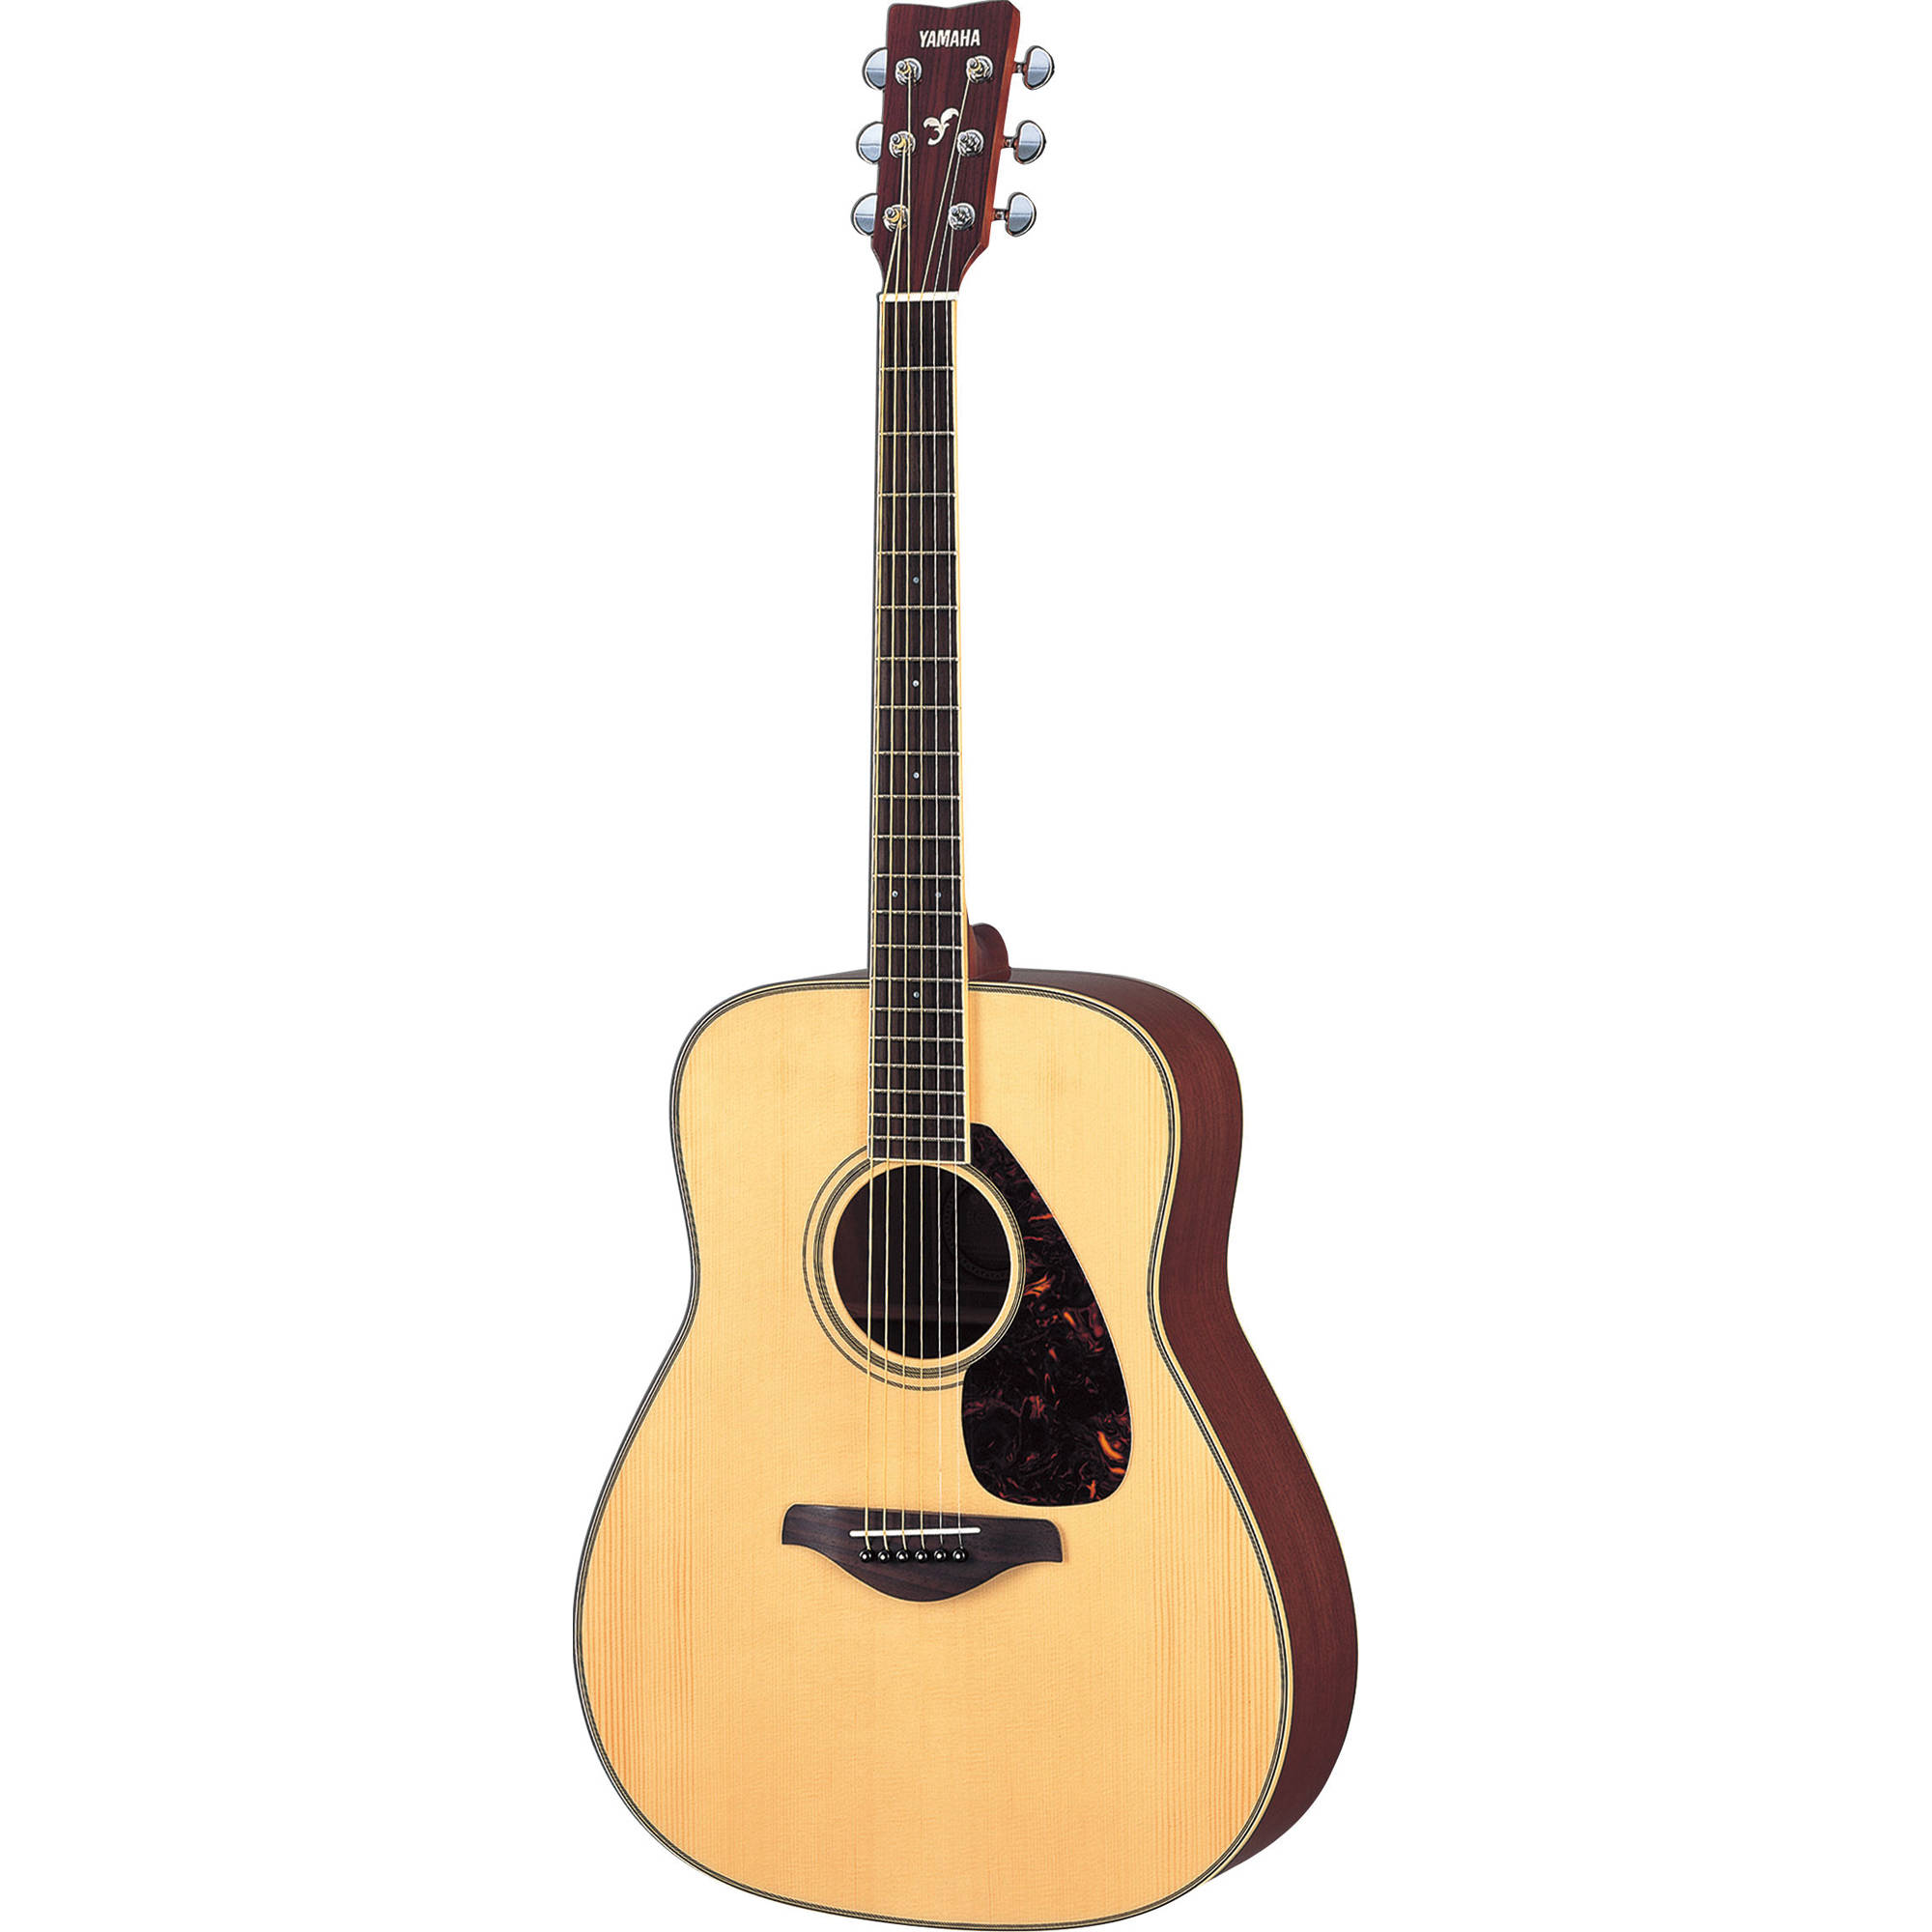 Yamaha fg720s solid top acoustic guitar natural fg720s b h for Where are yamaha guitars made